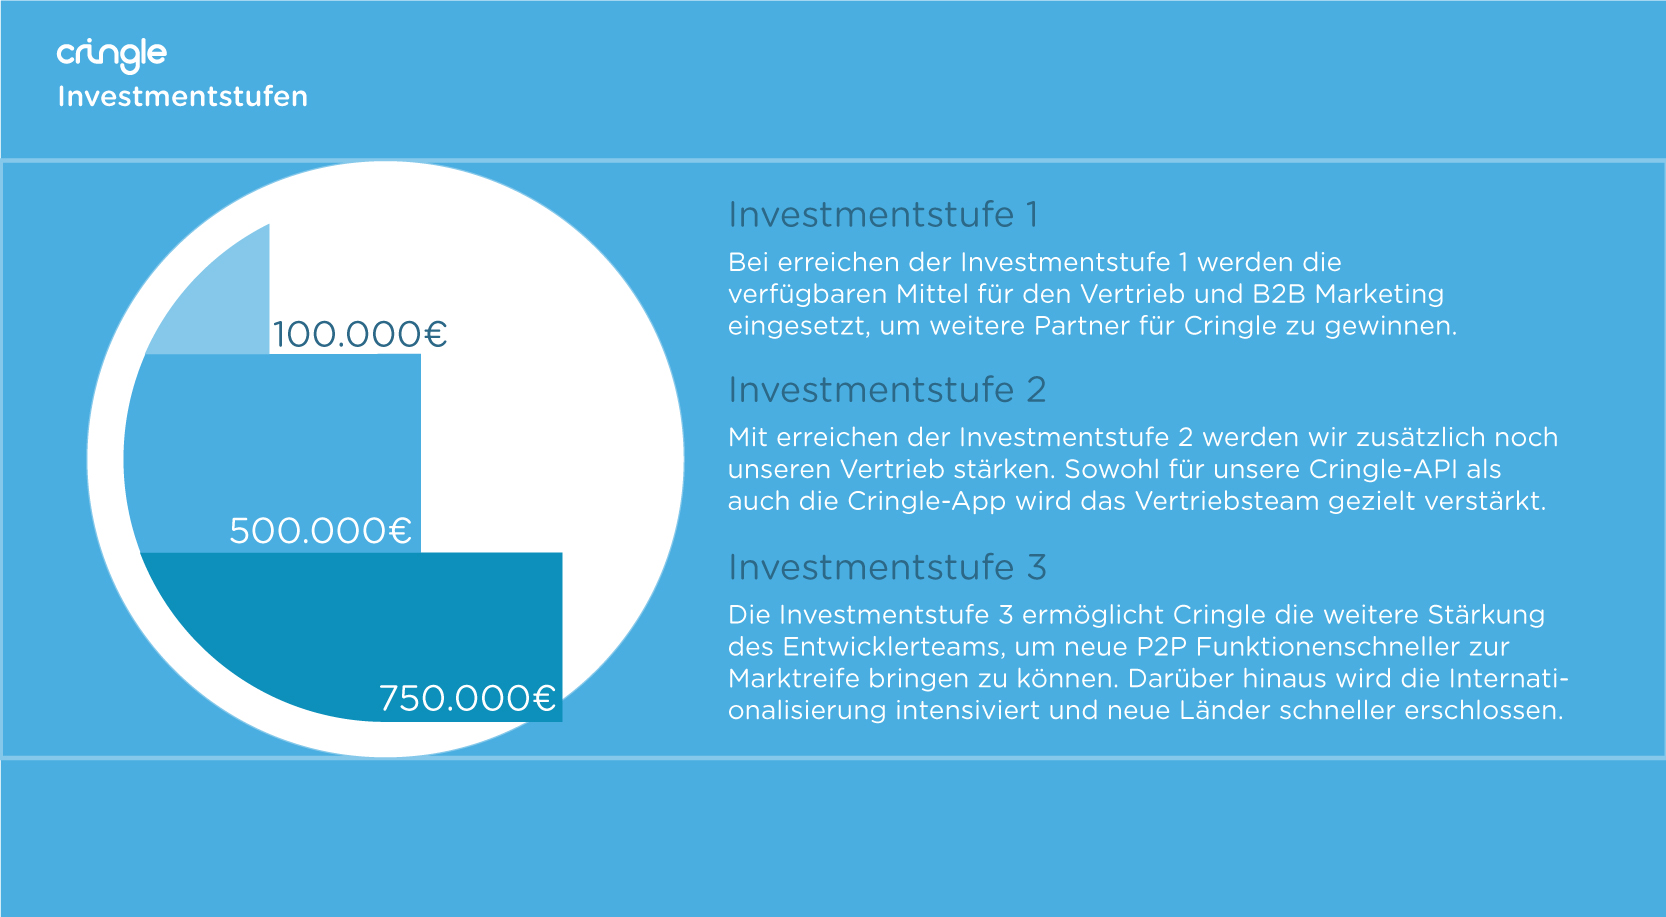 Cringle Investmentstufen